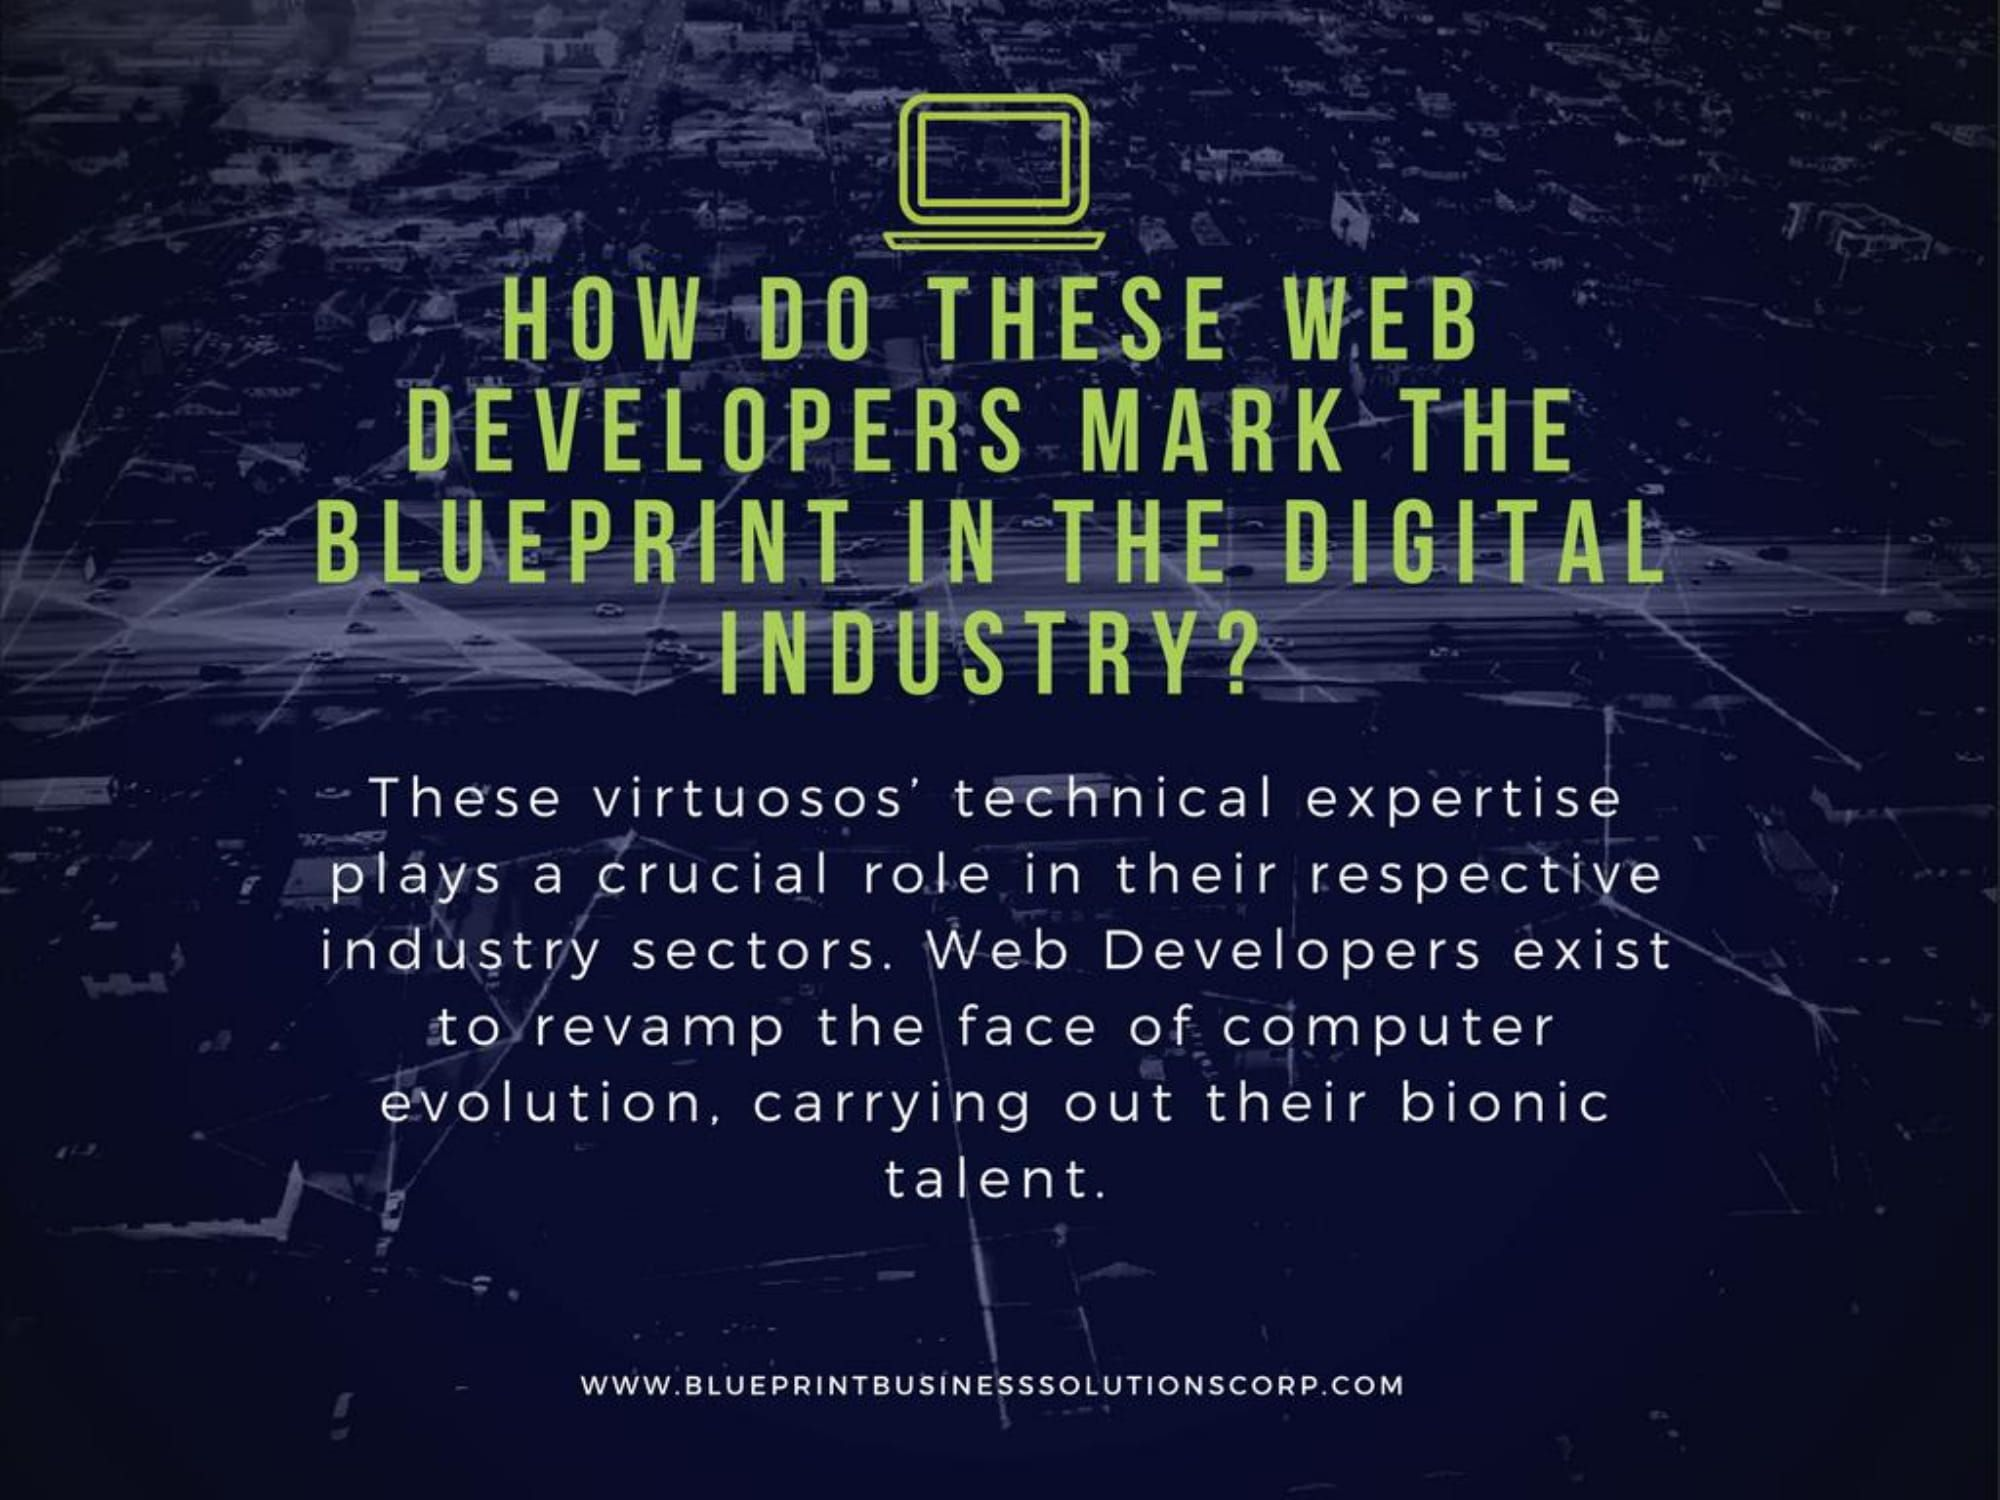 Pin de blueprint business solutions en web developers the eras blueprint business solutions corp staffing solutions provider malvernweather Image collections